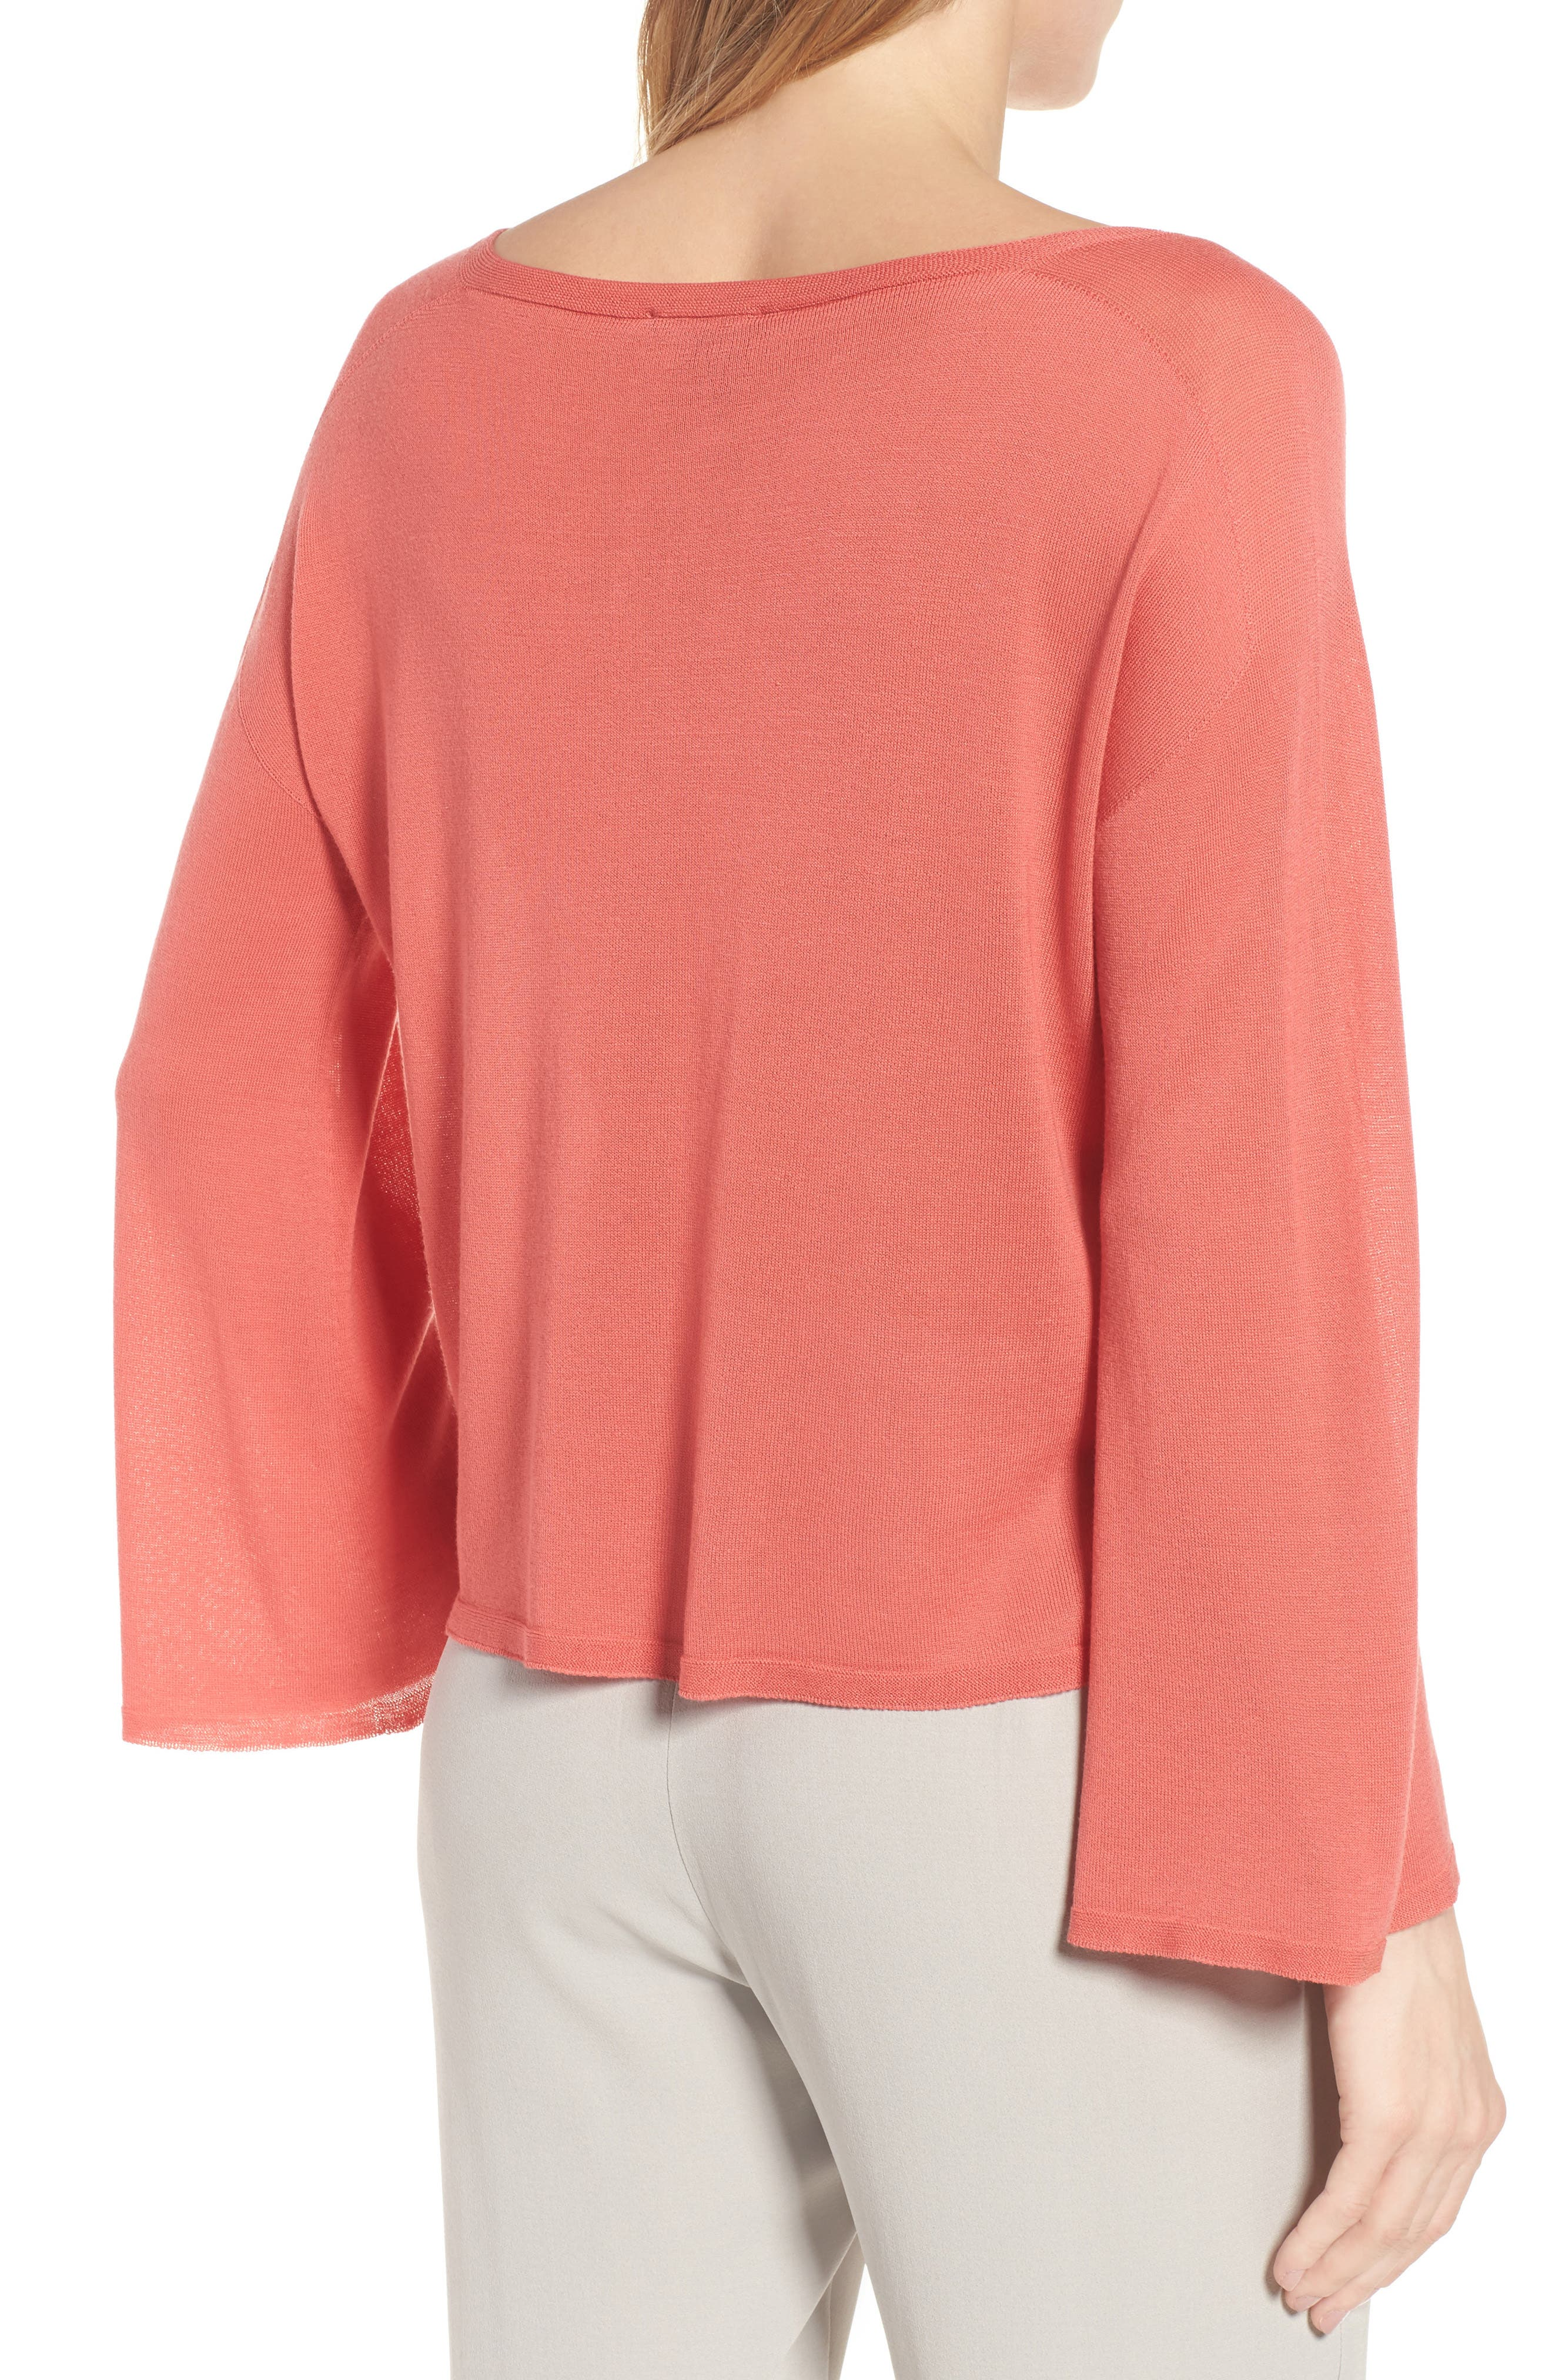 Tencel<sup>®</sup> Lyocell Knit Sweater,                             Alternate thumbnail 6, color,